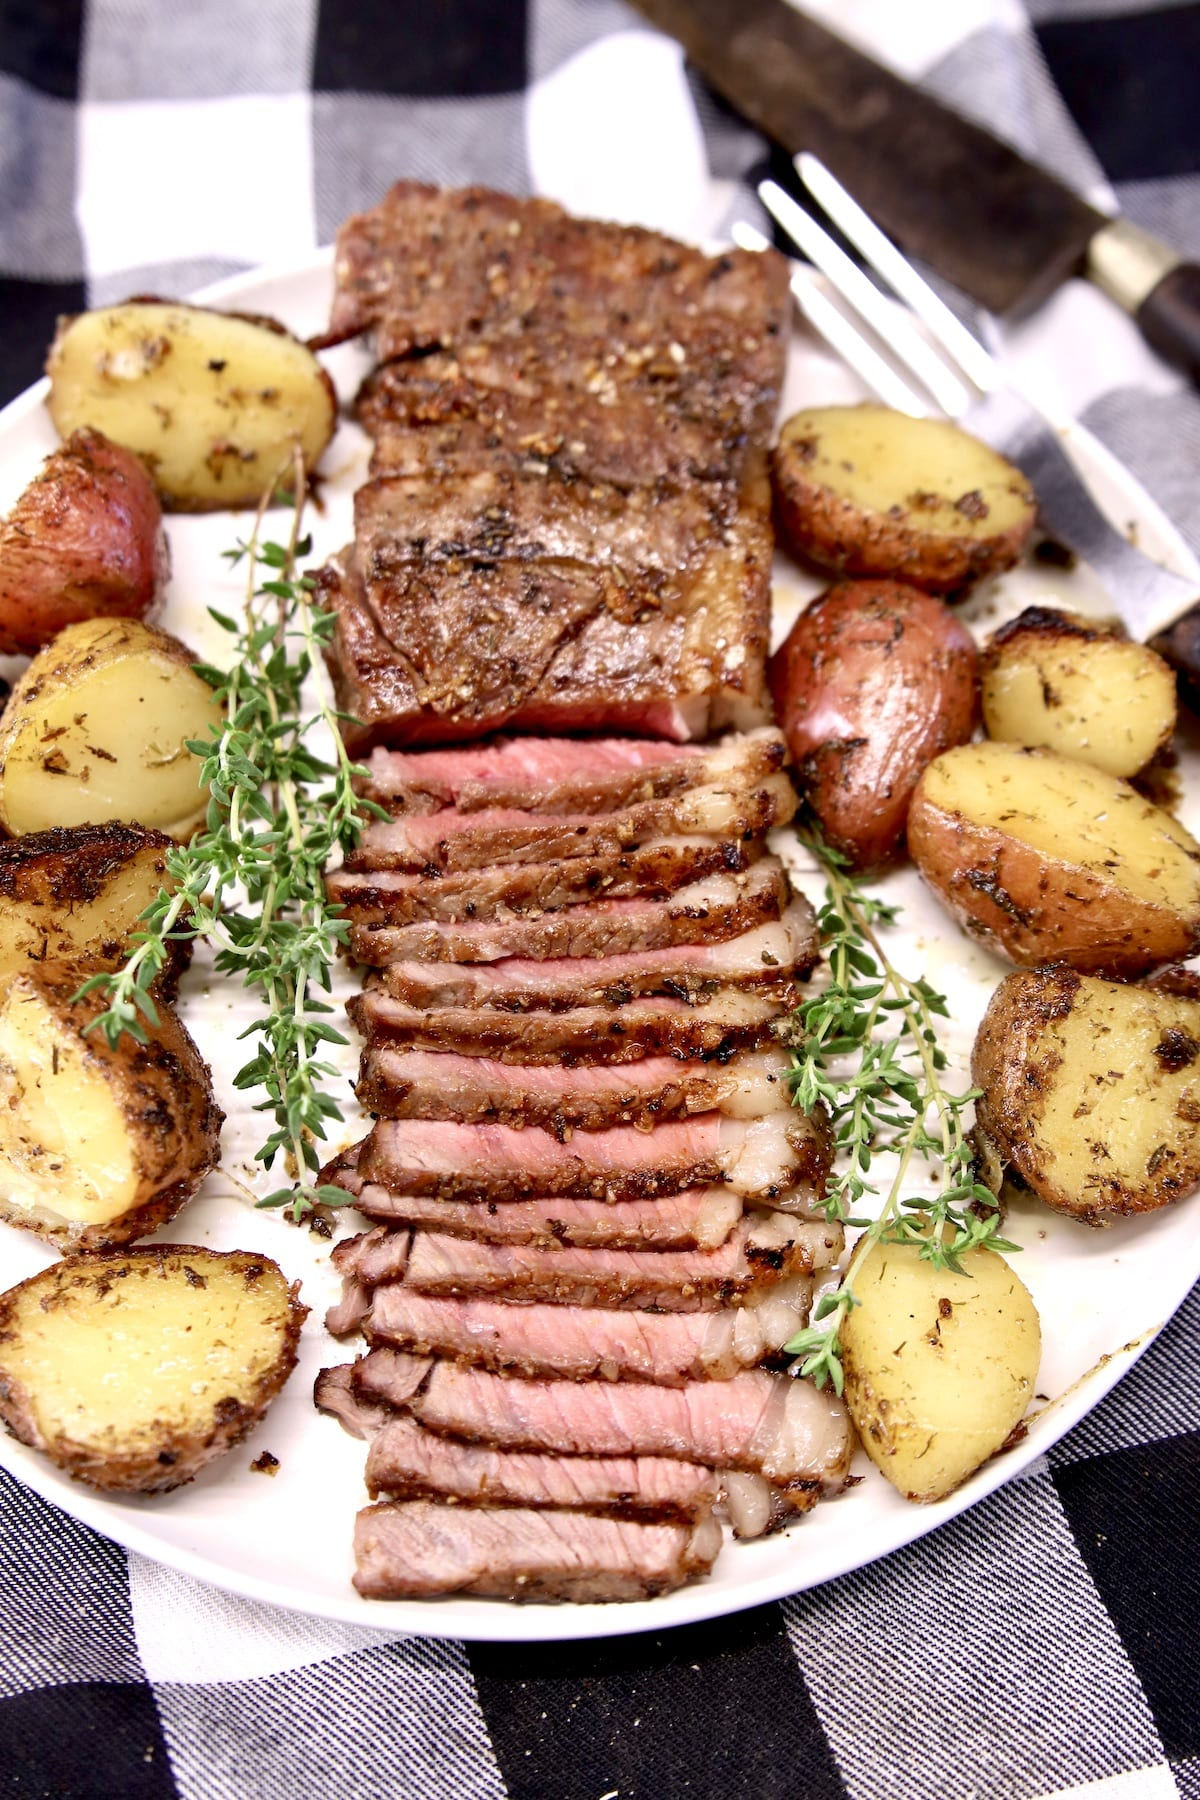 Grilled Strip Steak - partially sliced on a plate with roasted potatoes